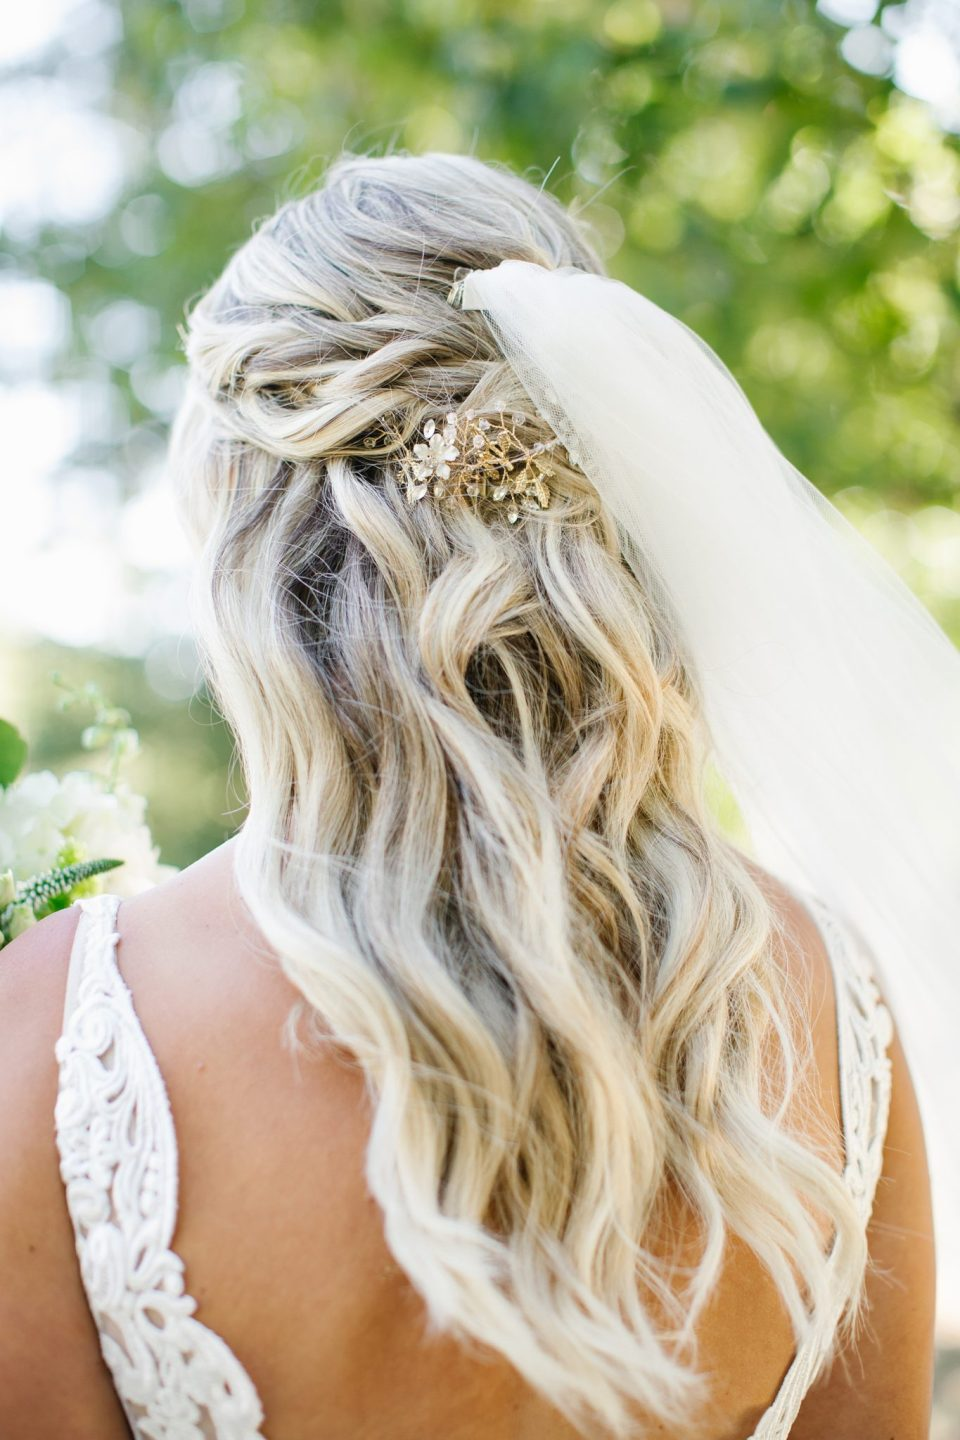 gorgeous bridal hairstyle for outdoor wedding day with Ashley Mac Photographs